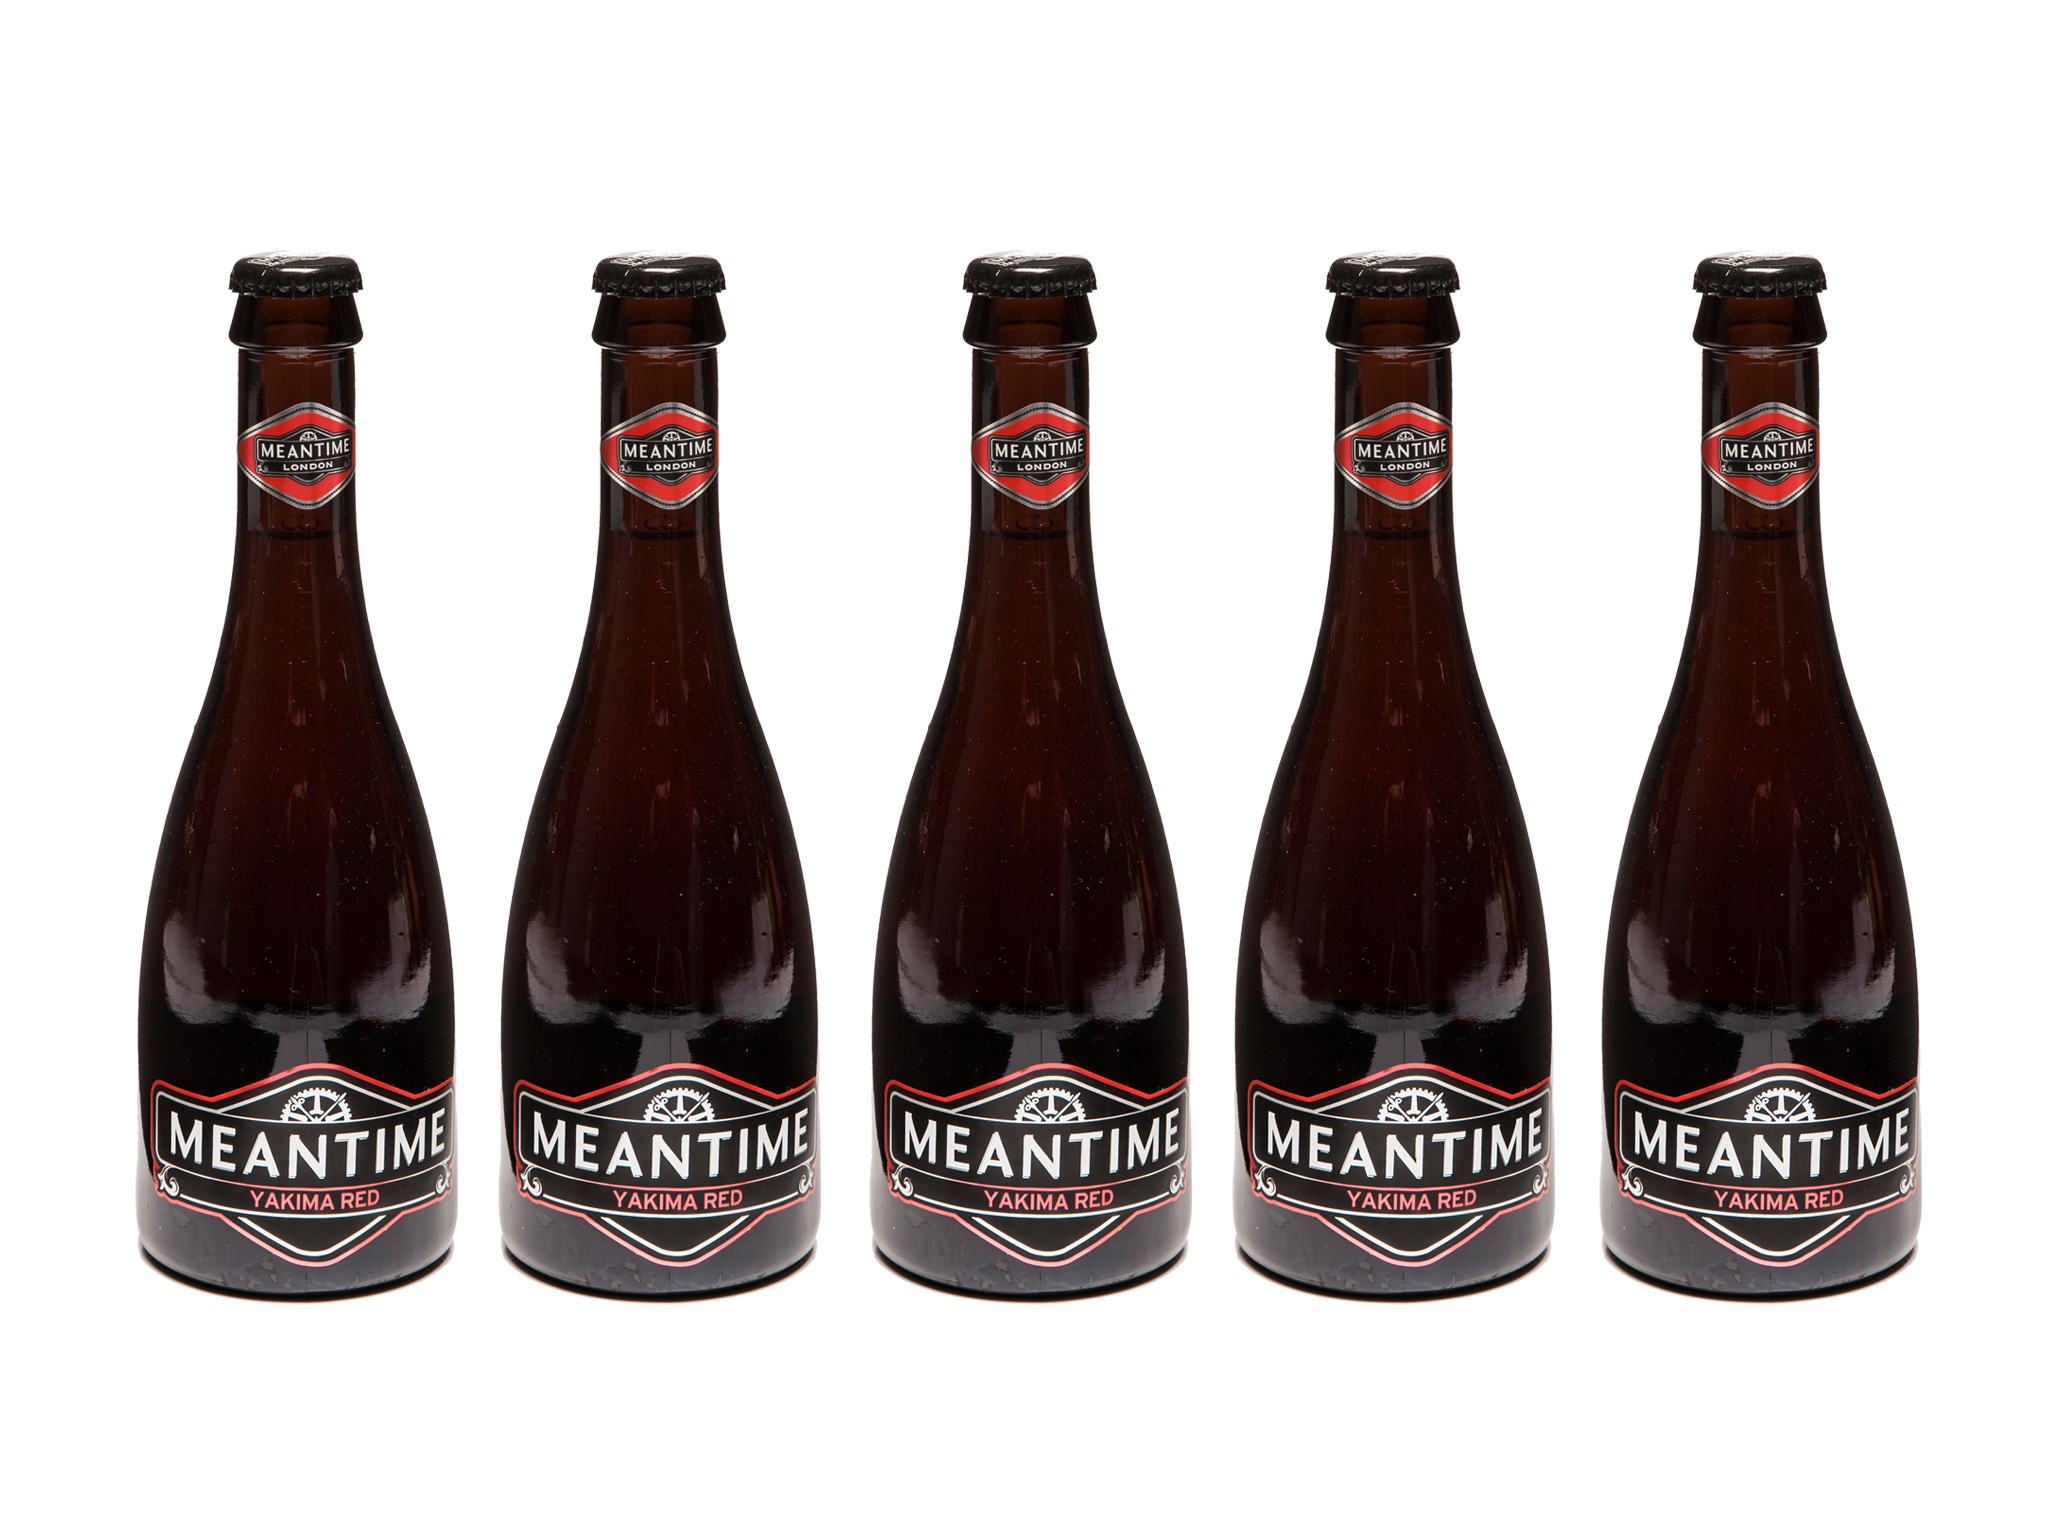 London's best craft beer, meantime yakima red